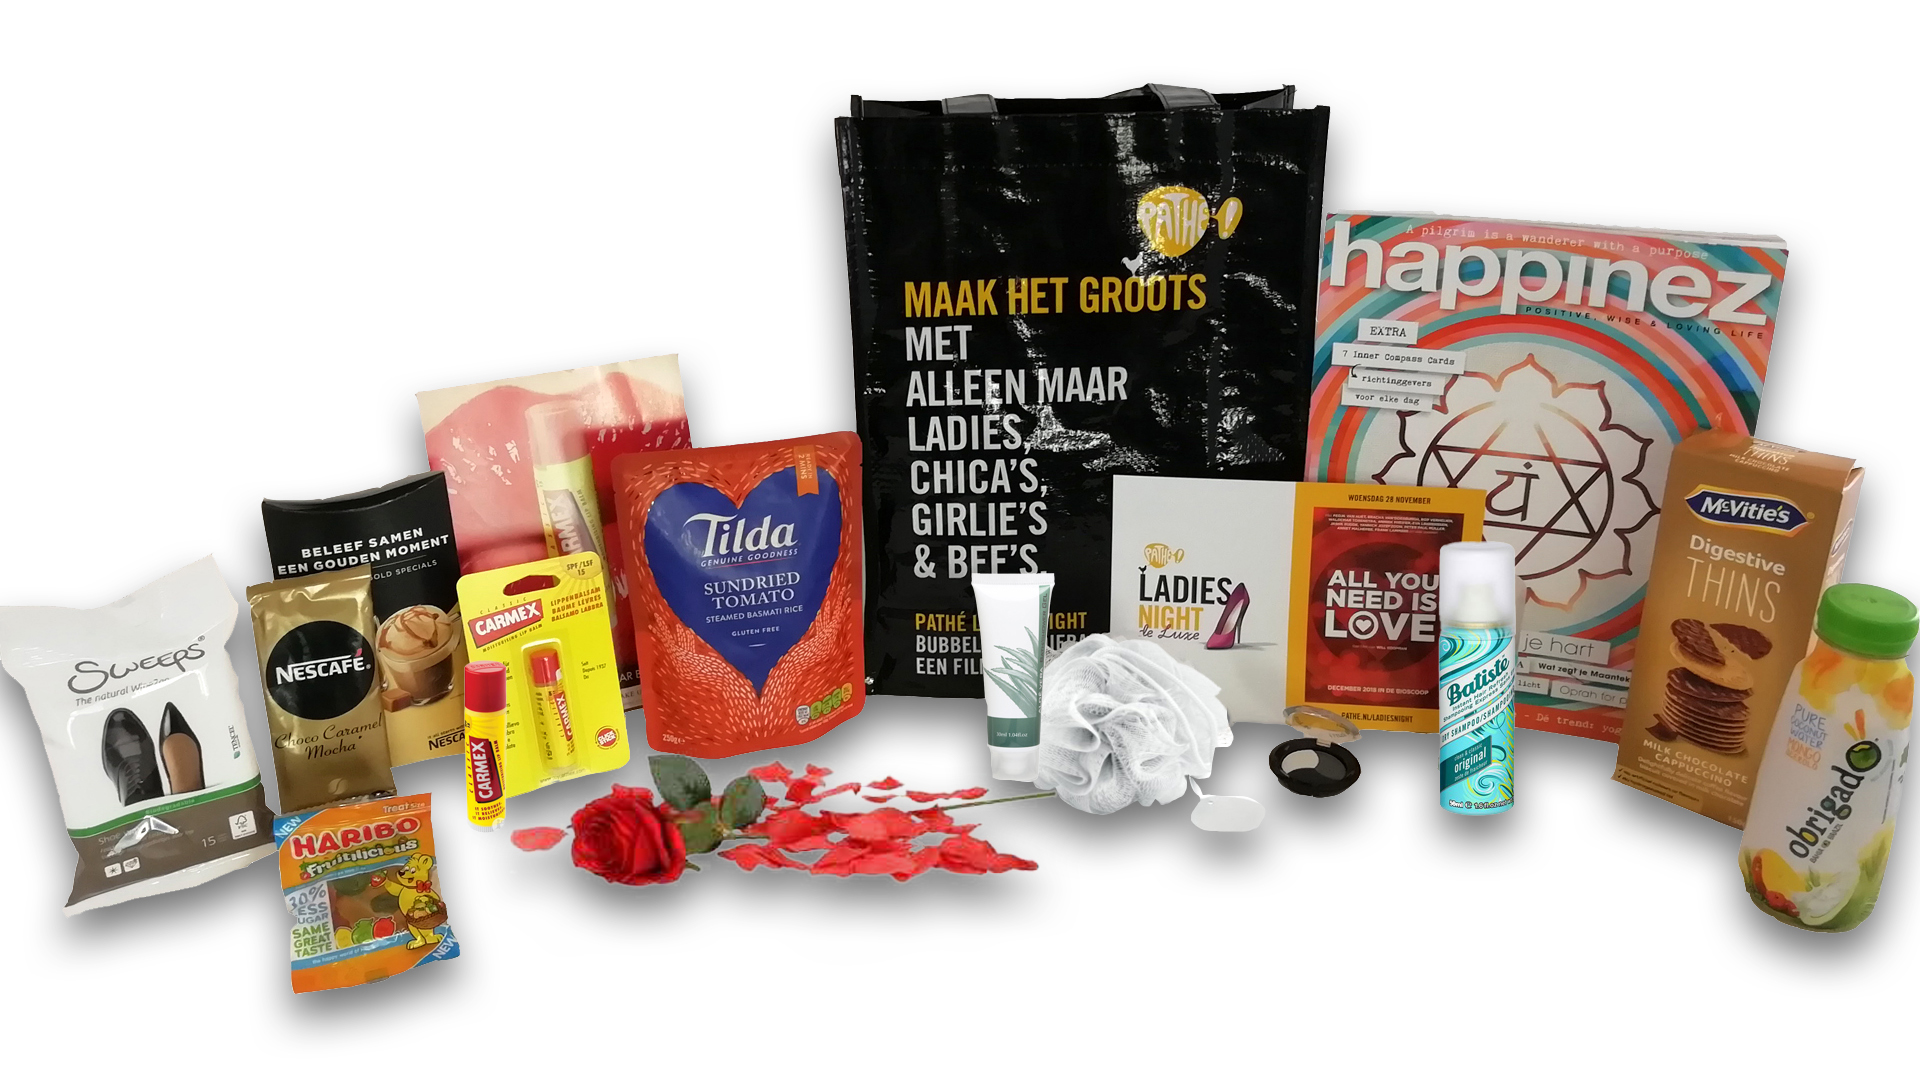 goodiebag de luxe All you nee is love